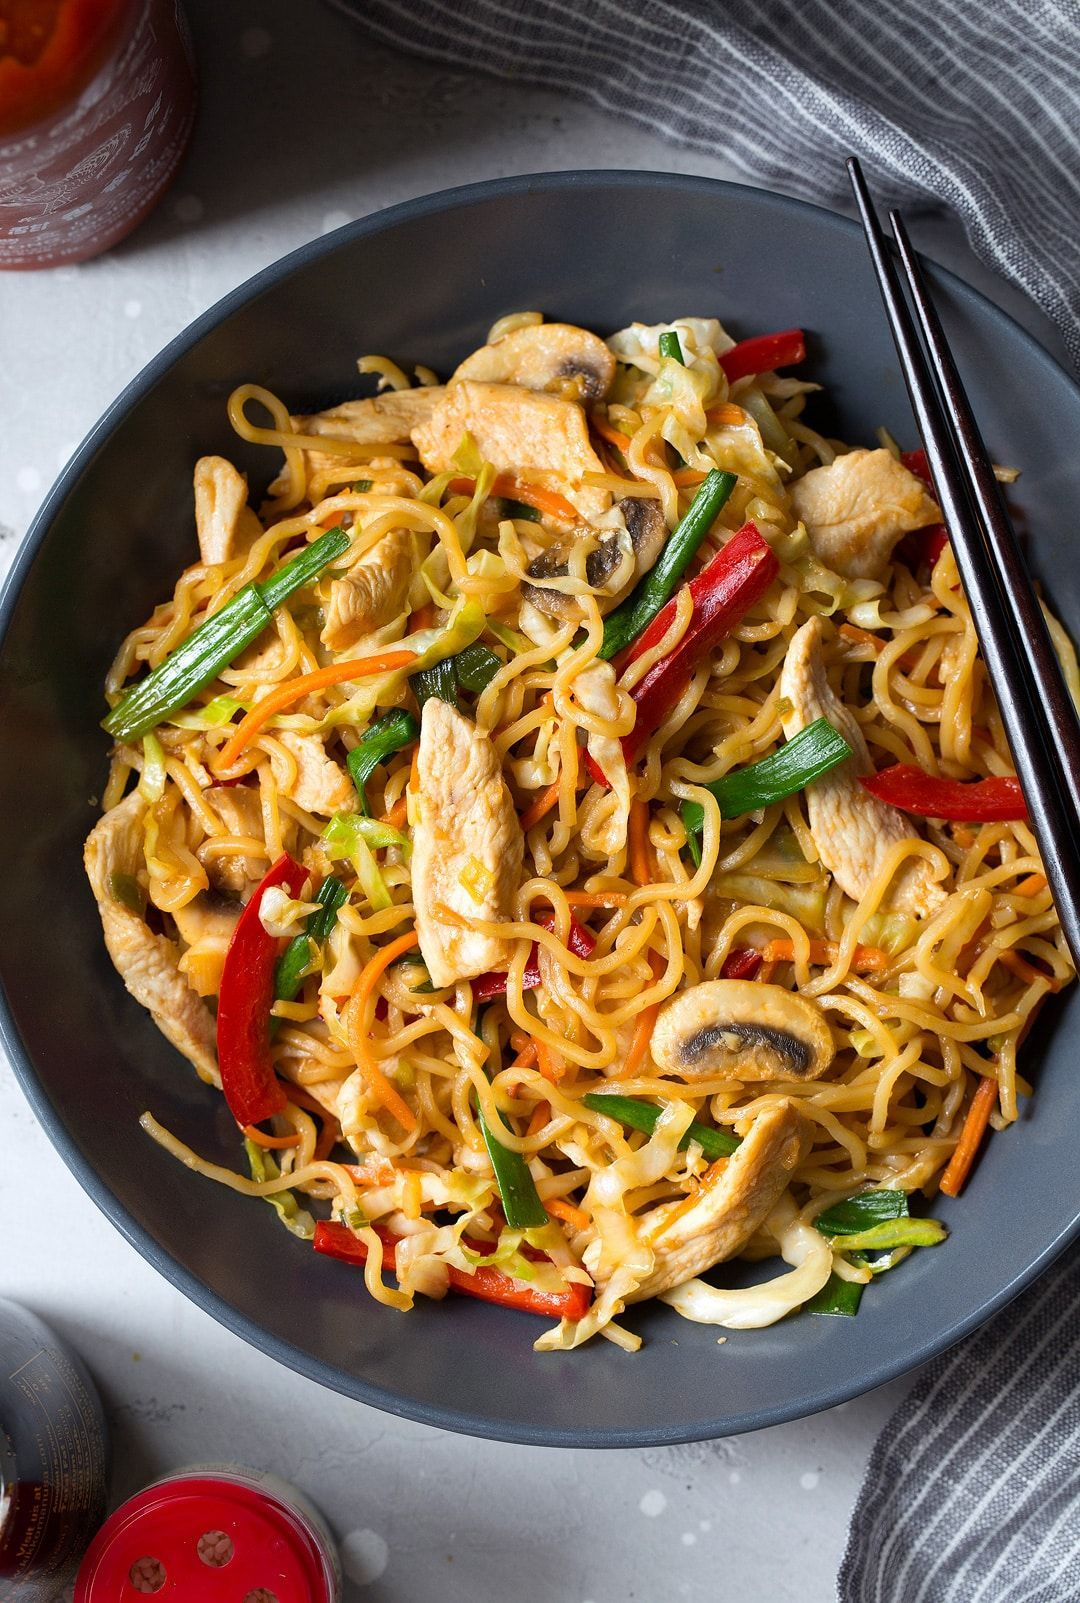 This Chicken Yakisoba Is Sure To Satisfy Those Asian Food Cravings It S A Delicious Japanese Noodle Dish Chicken Yakisoba Asian Recipes Easy Japanese Recipes